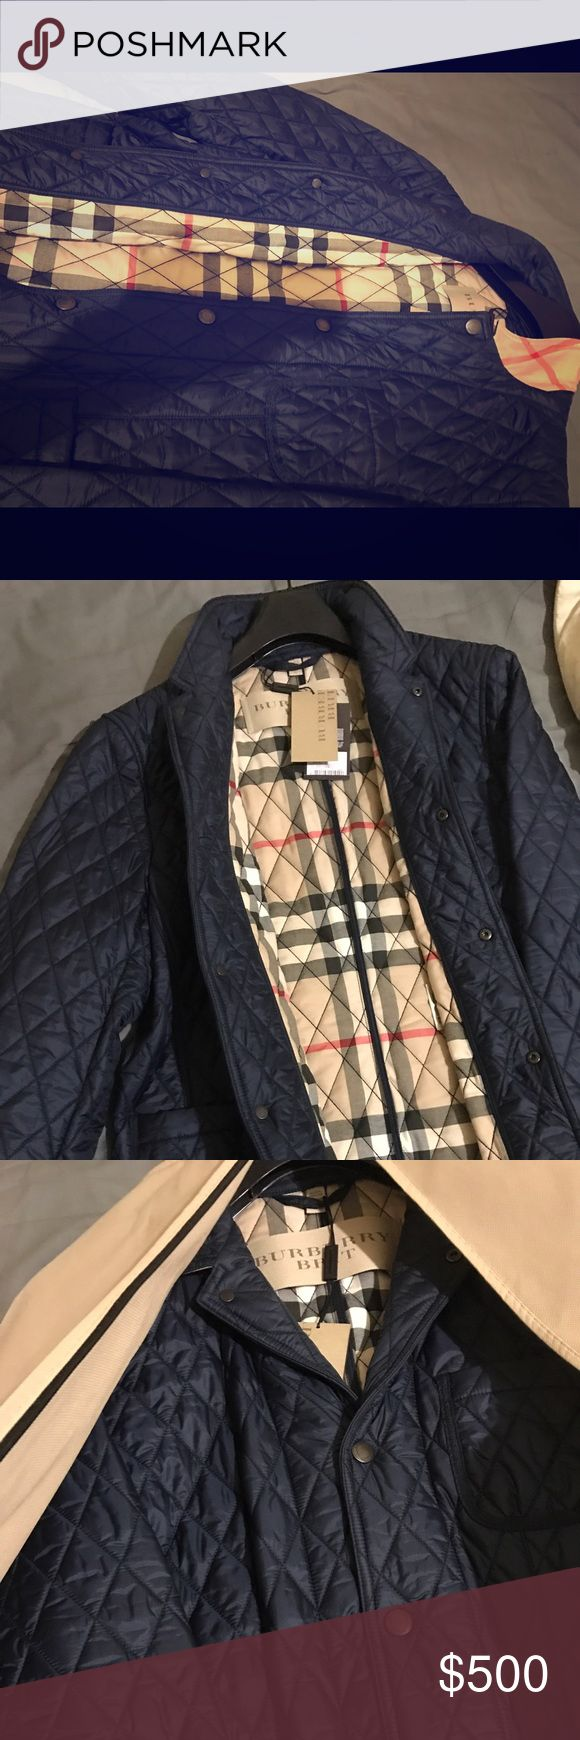 Burberry men quilted blazer jacket 100% authentic Brand new with tags men's quilted blazer jacket 100% authentic size large it can fit a m body too Burberry Jackets & Coats Lightweight & Shirt Jackets